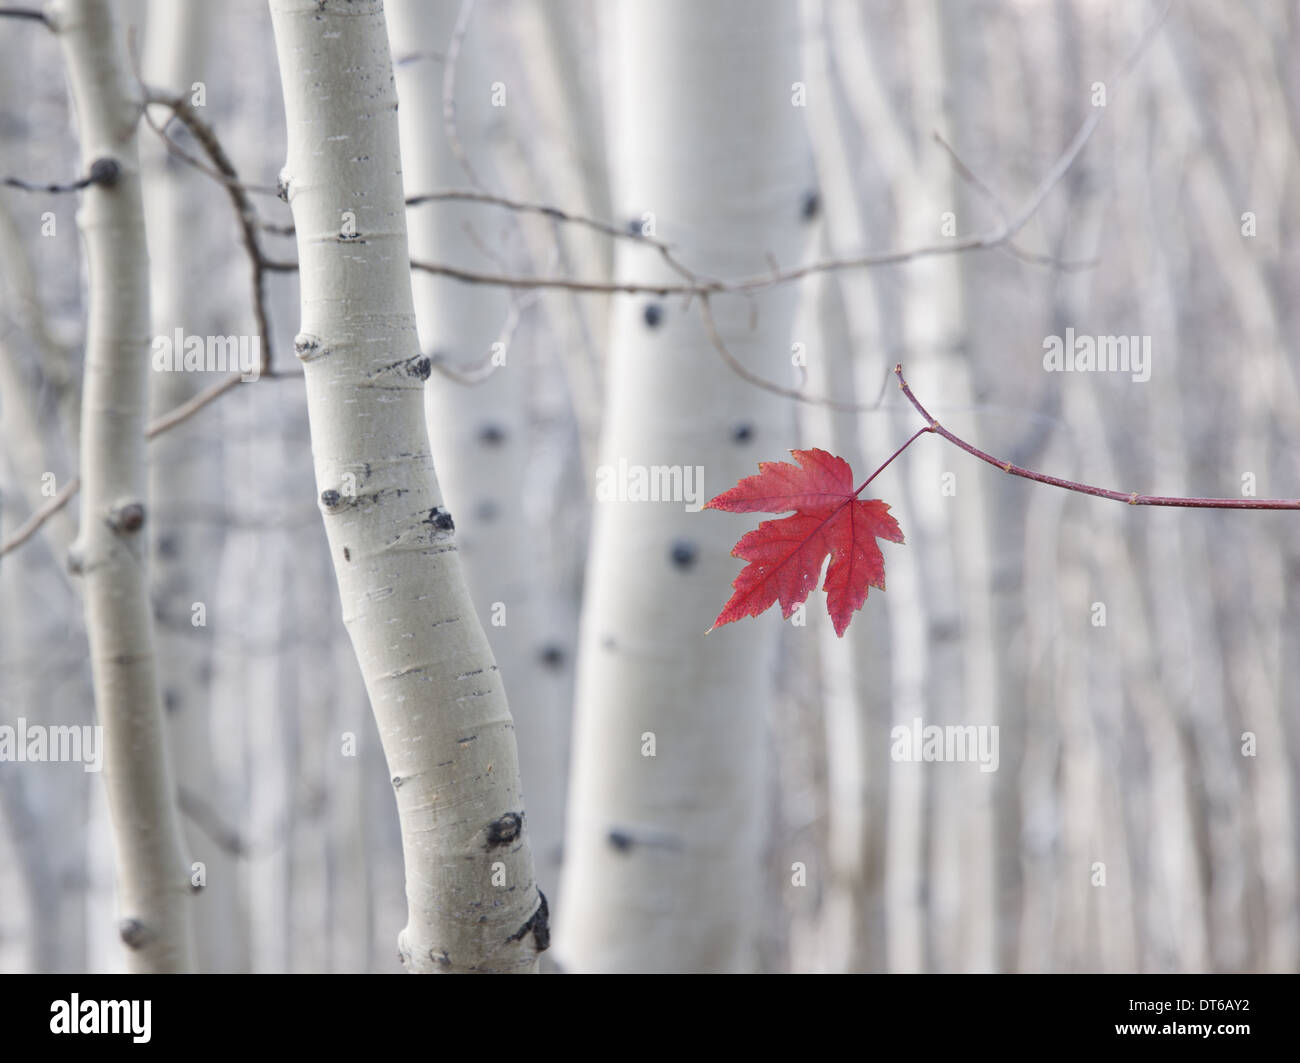 A single red maple leaf in autumn, against a background of aspen tree trunks with cream and white bark. Wasatch - Stock Image